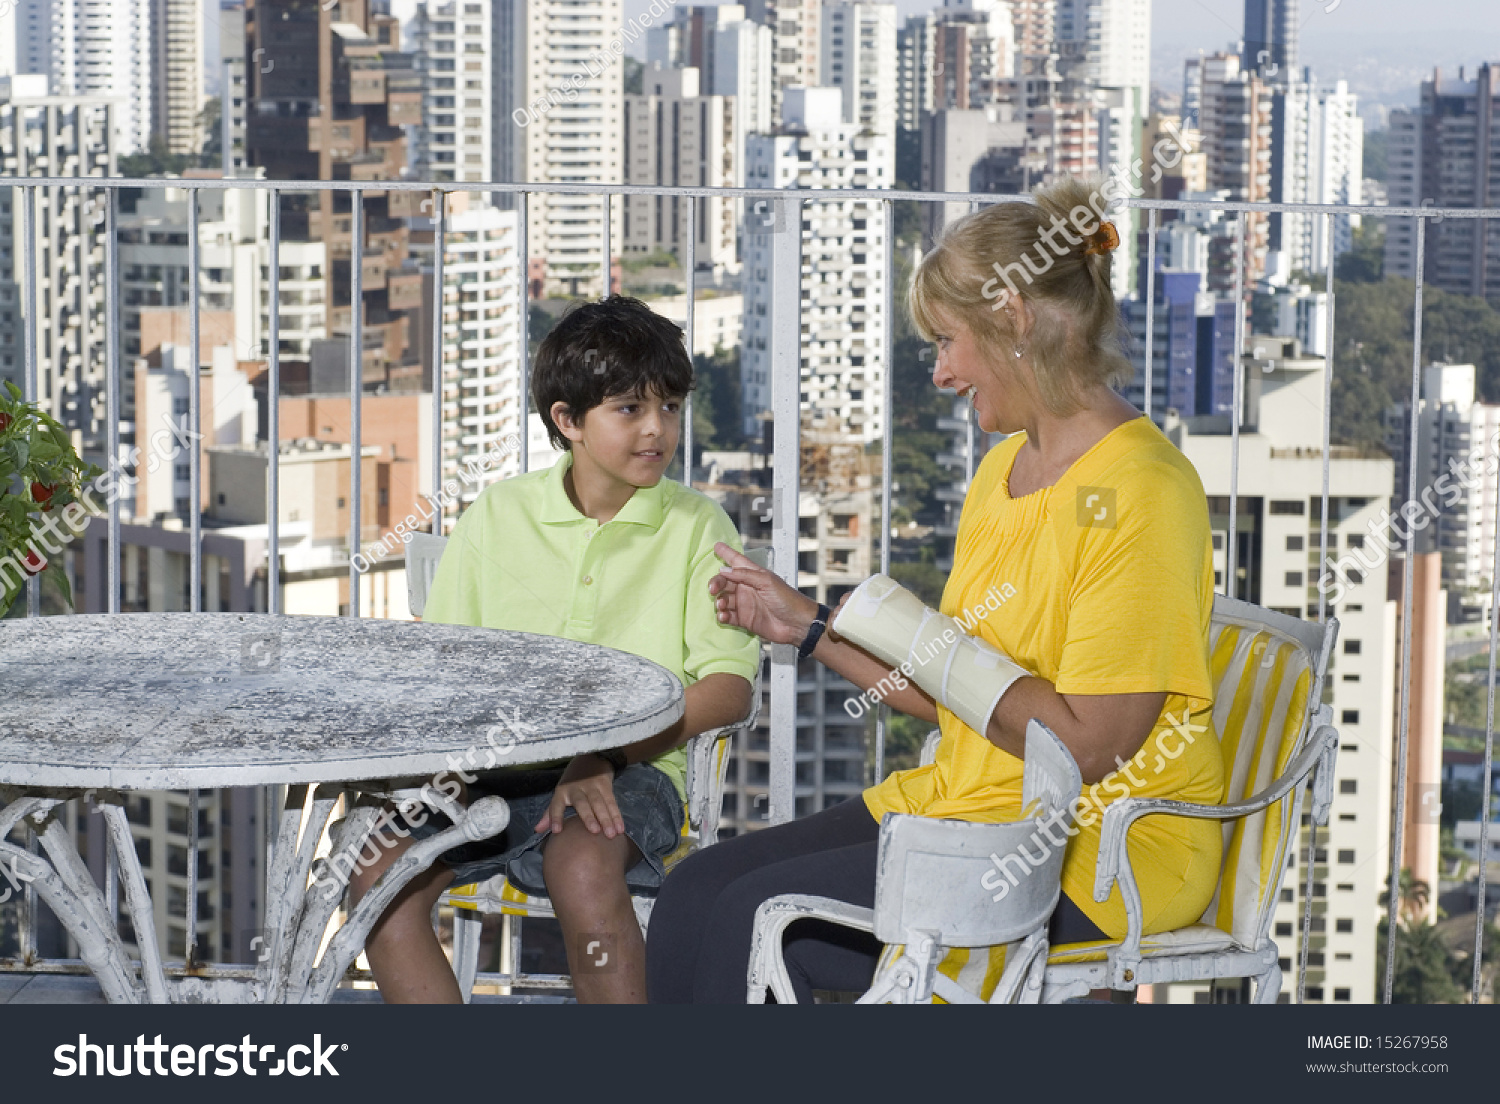 Woman sitting next to boy on balcony overlooking city for Balcony overlooking city